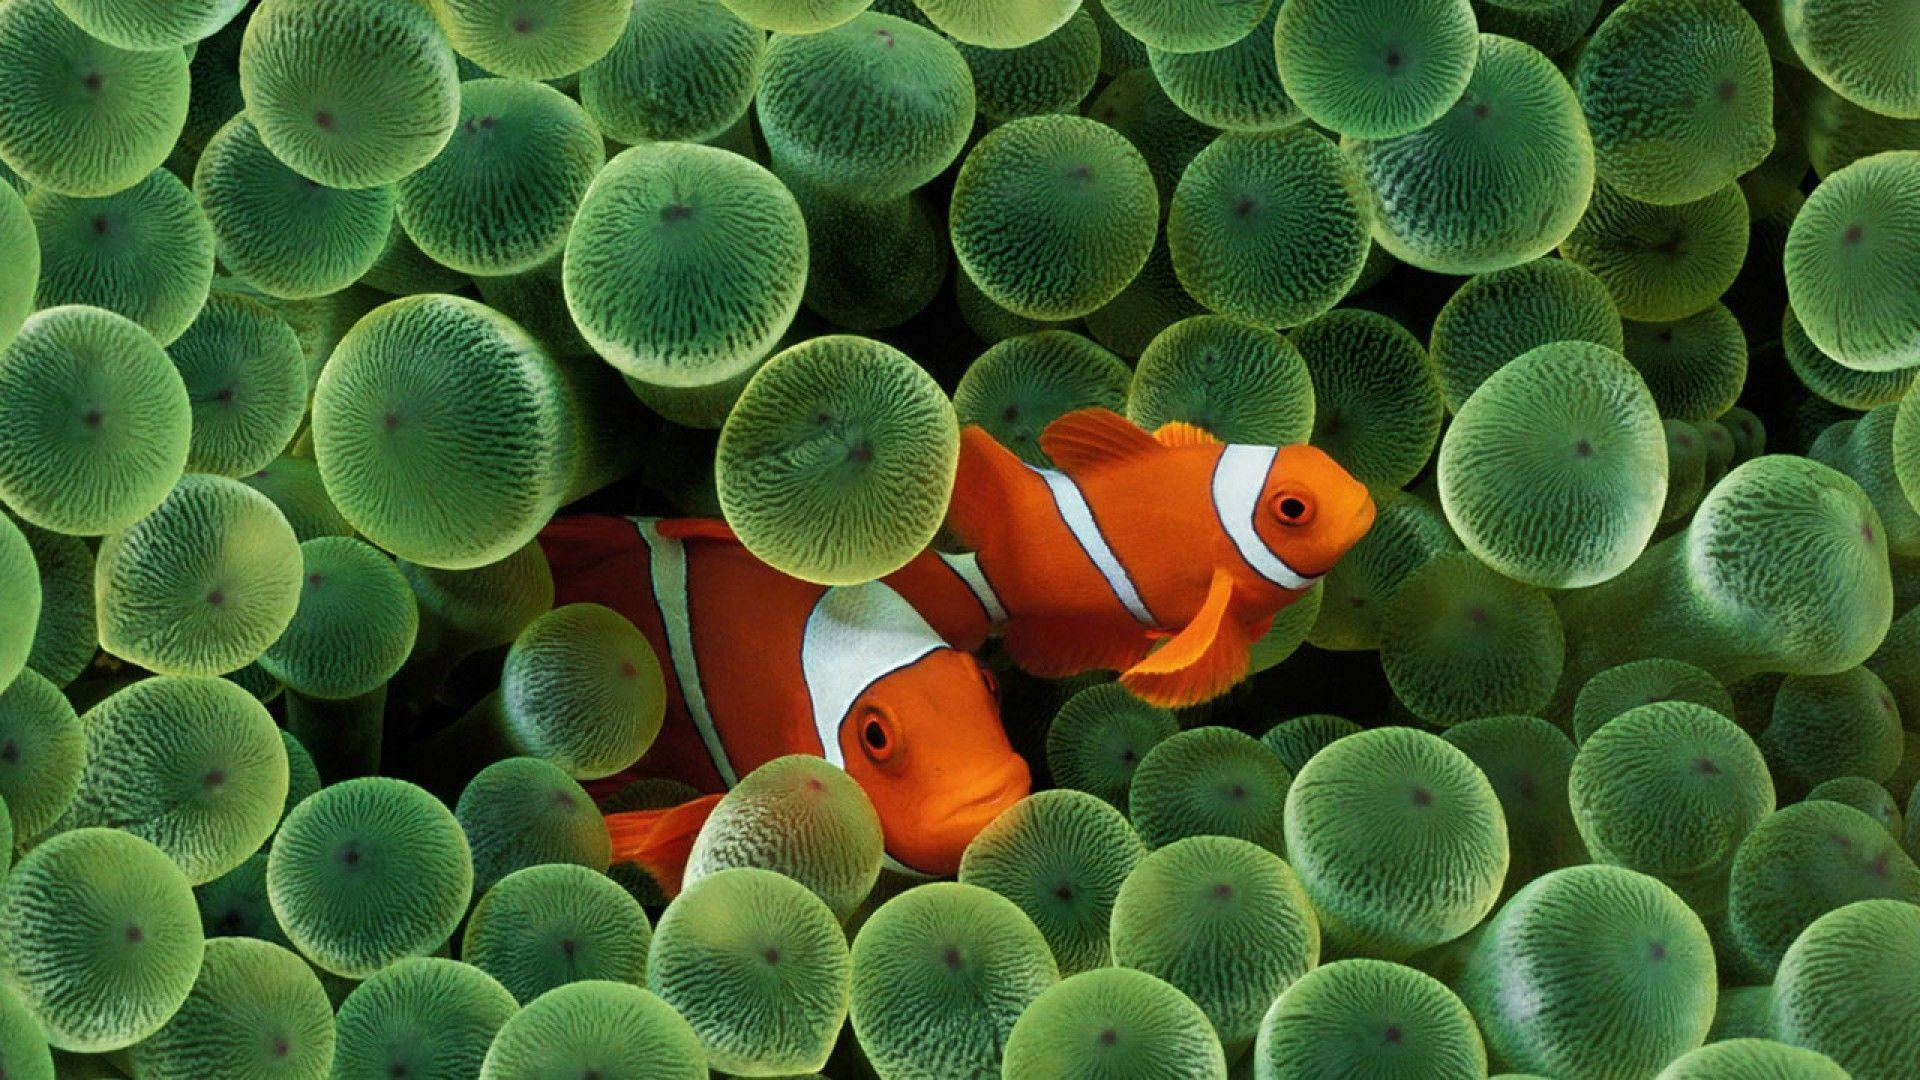 Wallpapers For > Clown Fish Wallpapers